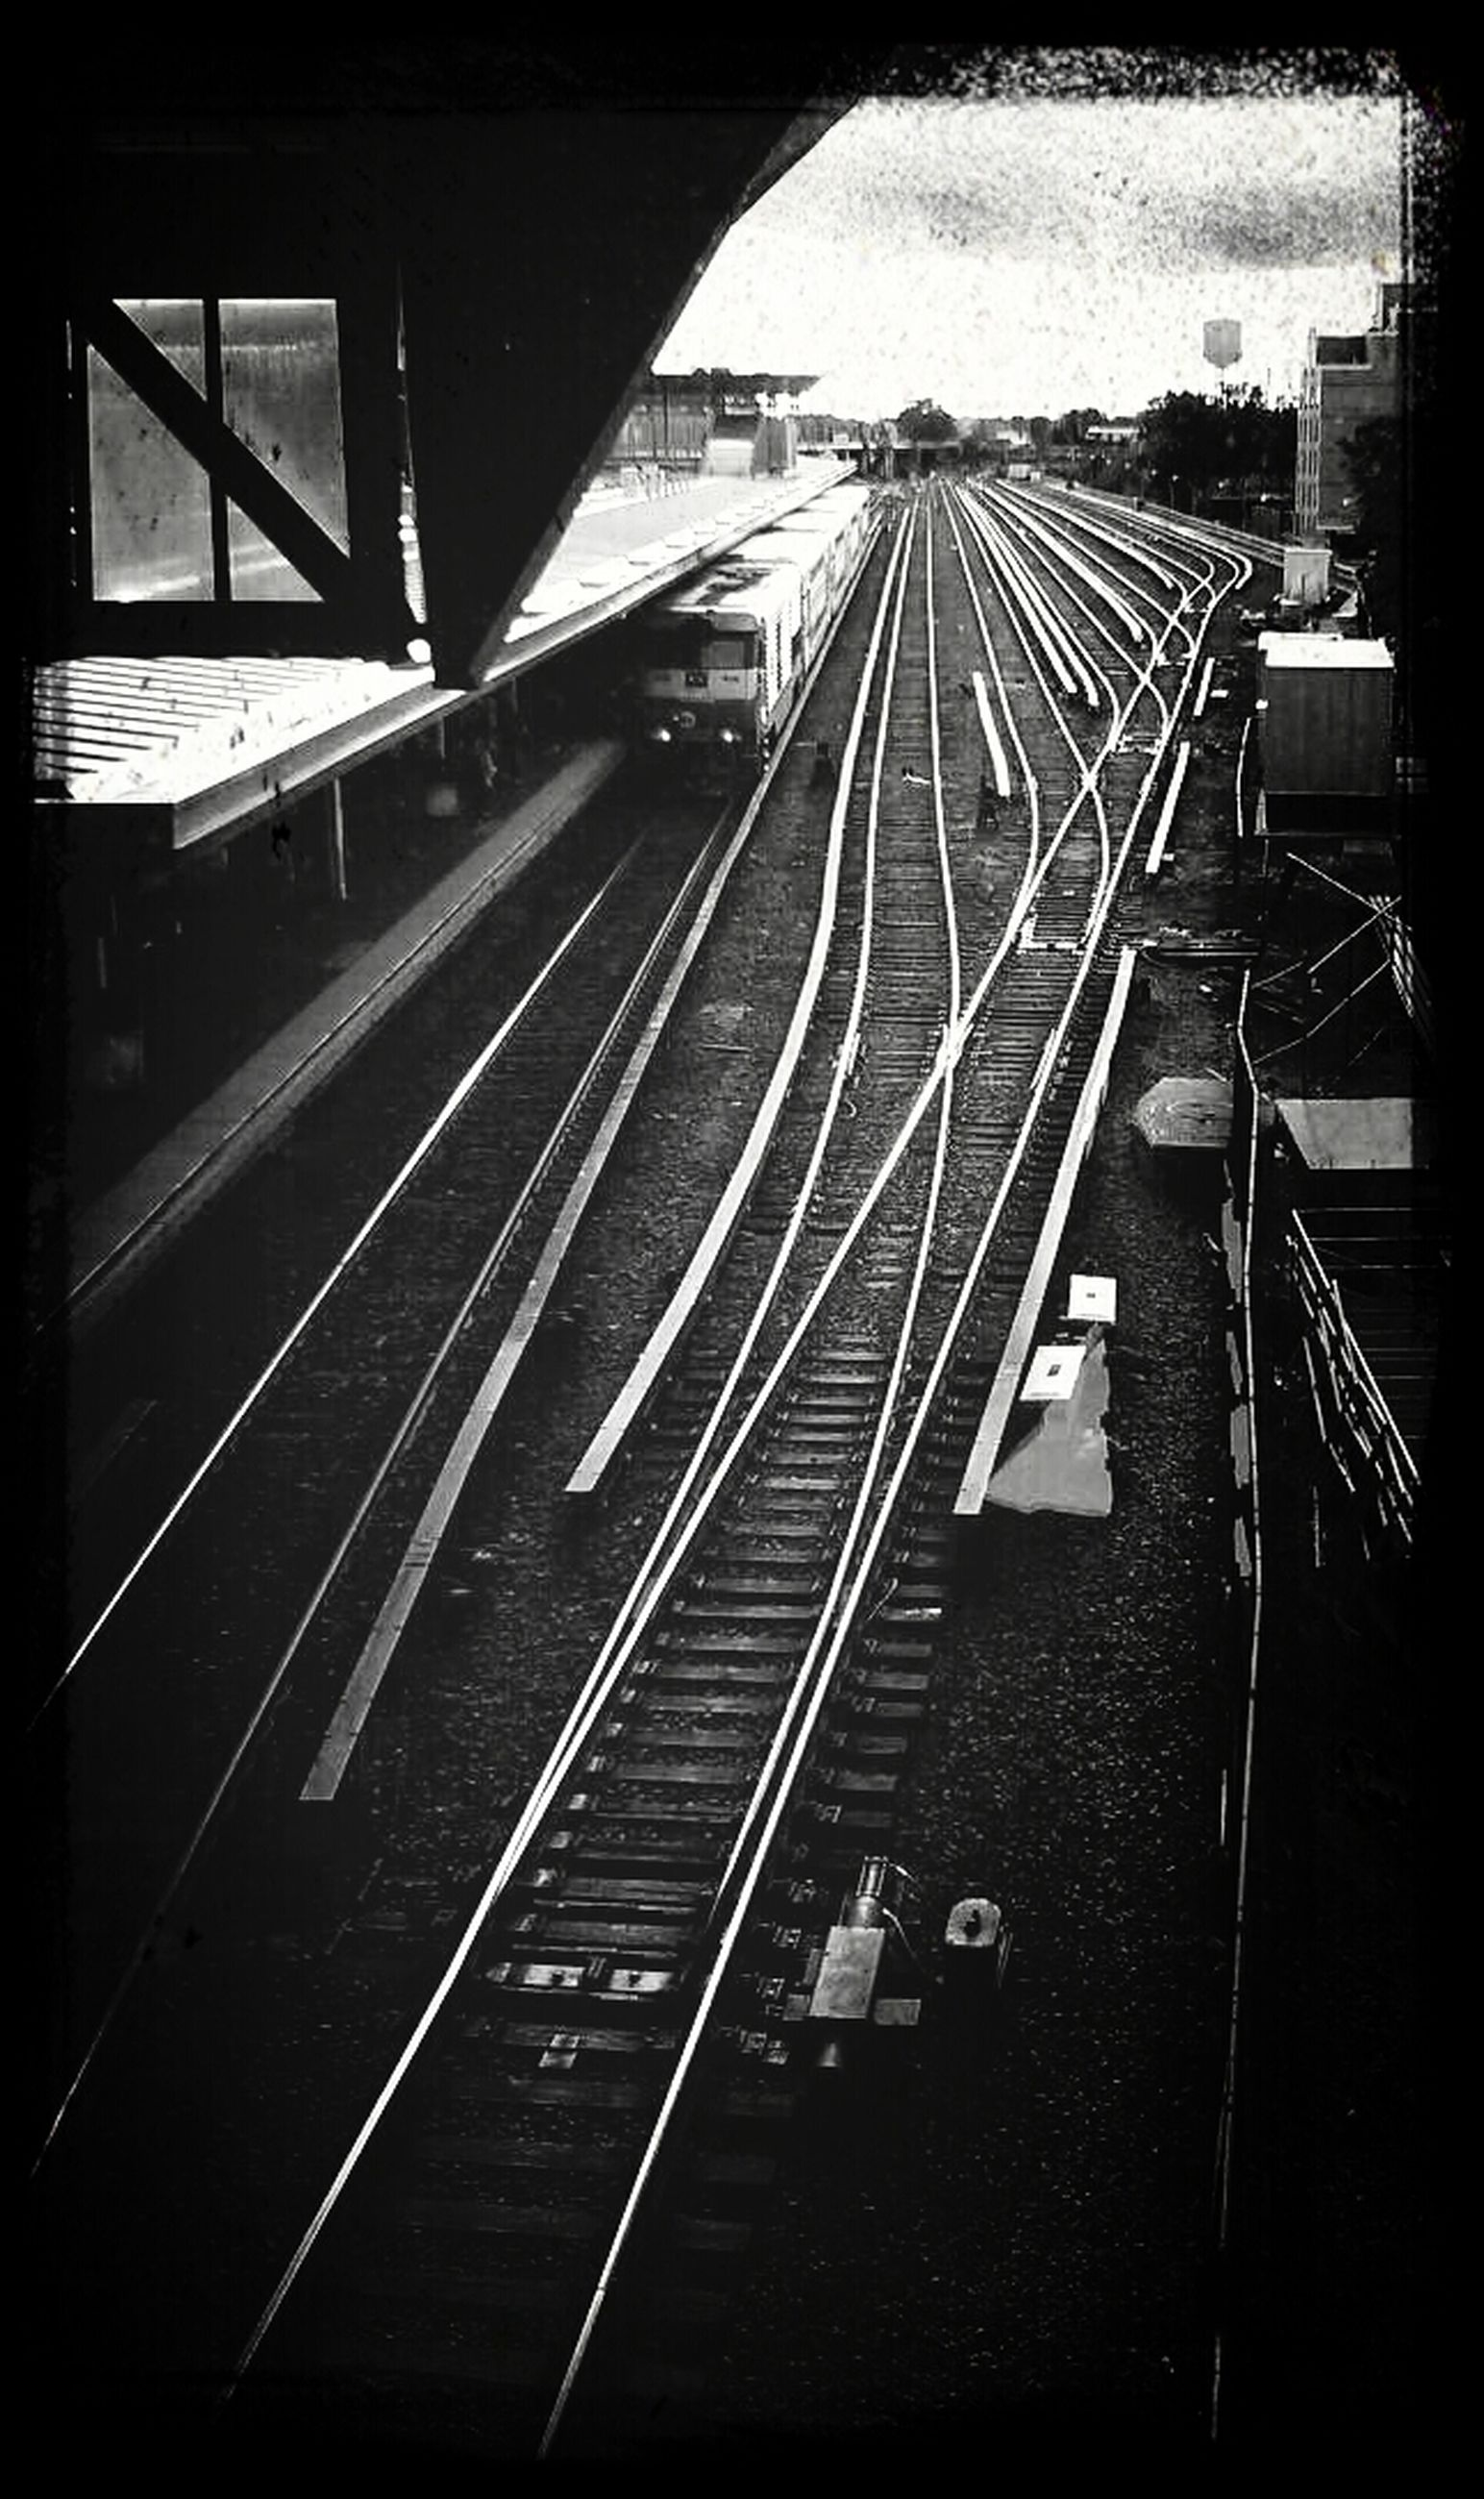 railroad track, transportation, rail transportation, railroad station platform, railroad station, public transportation, the way forward, transfer print, diminishing perspective, built structure, architecture, high angle view, auto post production filter, vanishing point, railway track, travel, sky, mode of transport, connection, train - vehicle